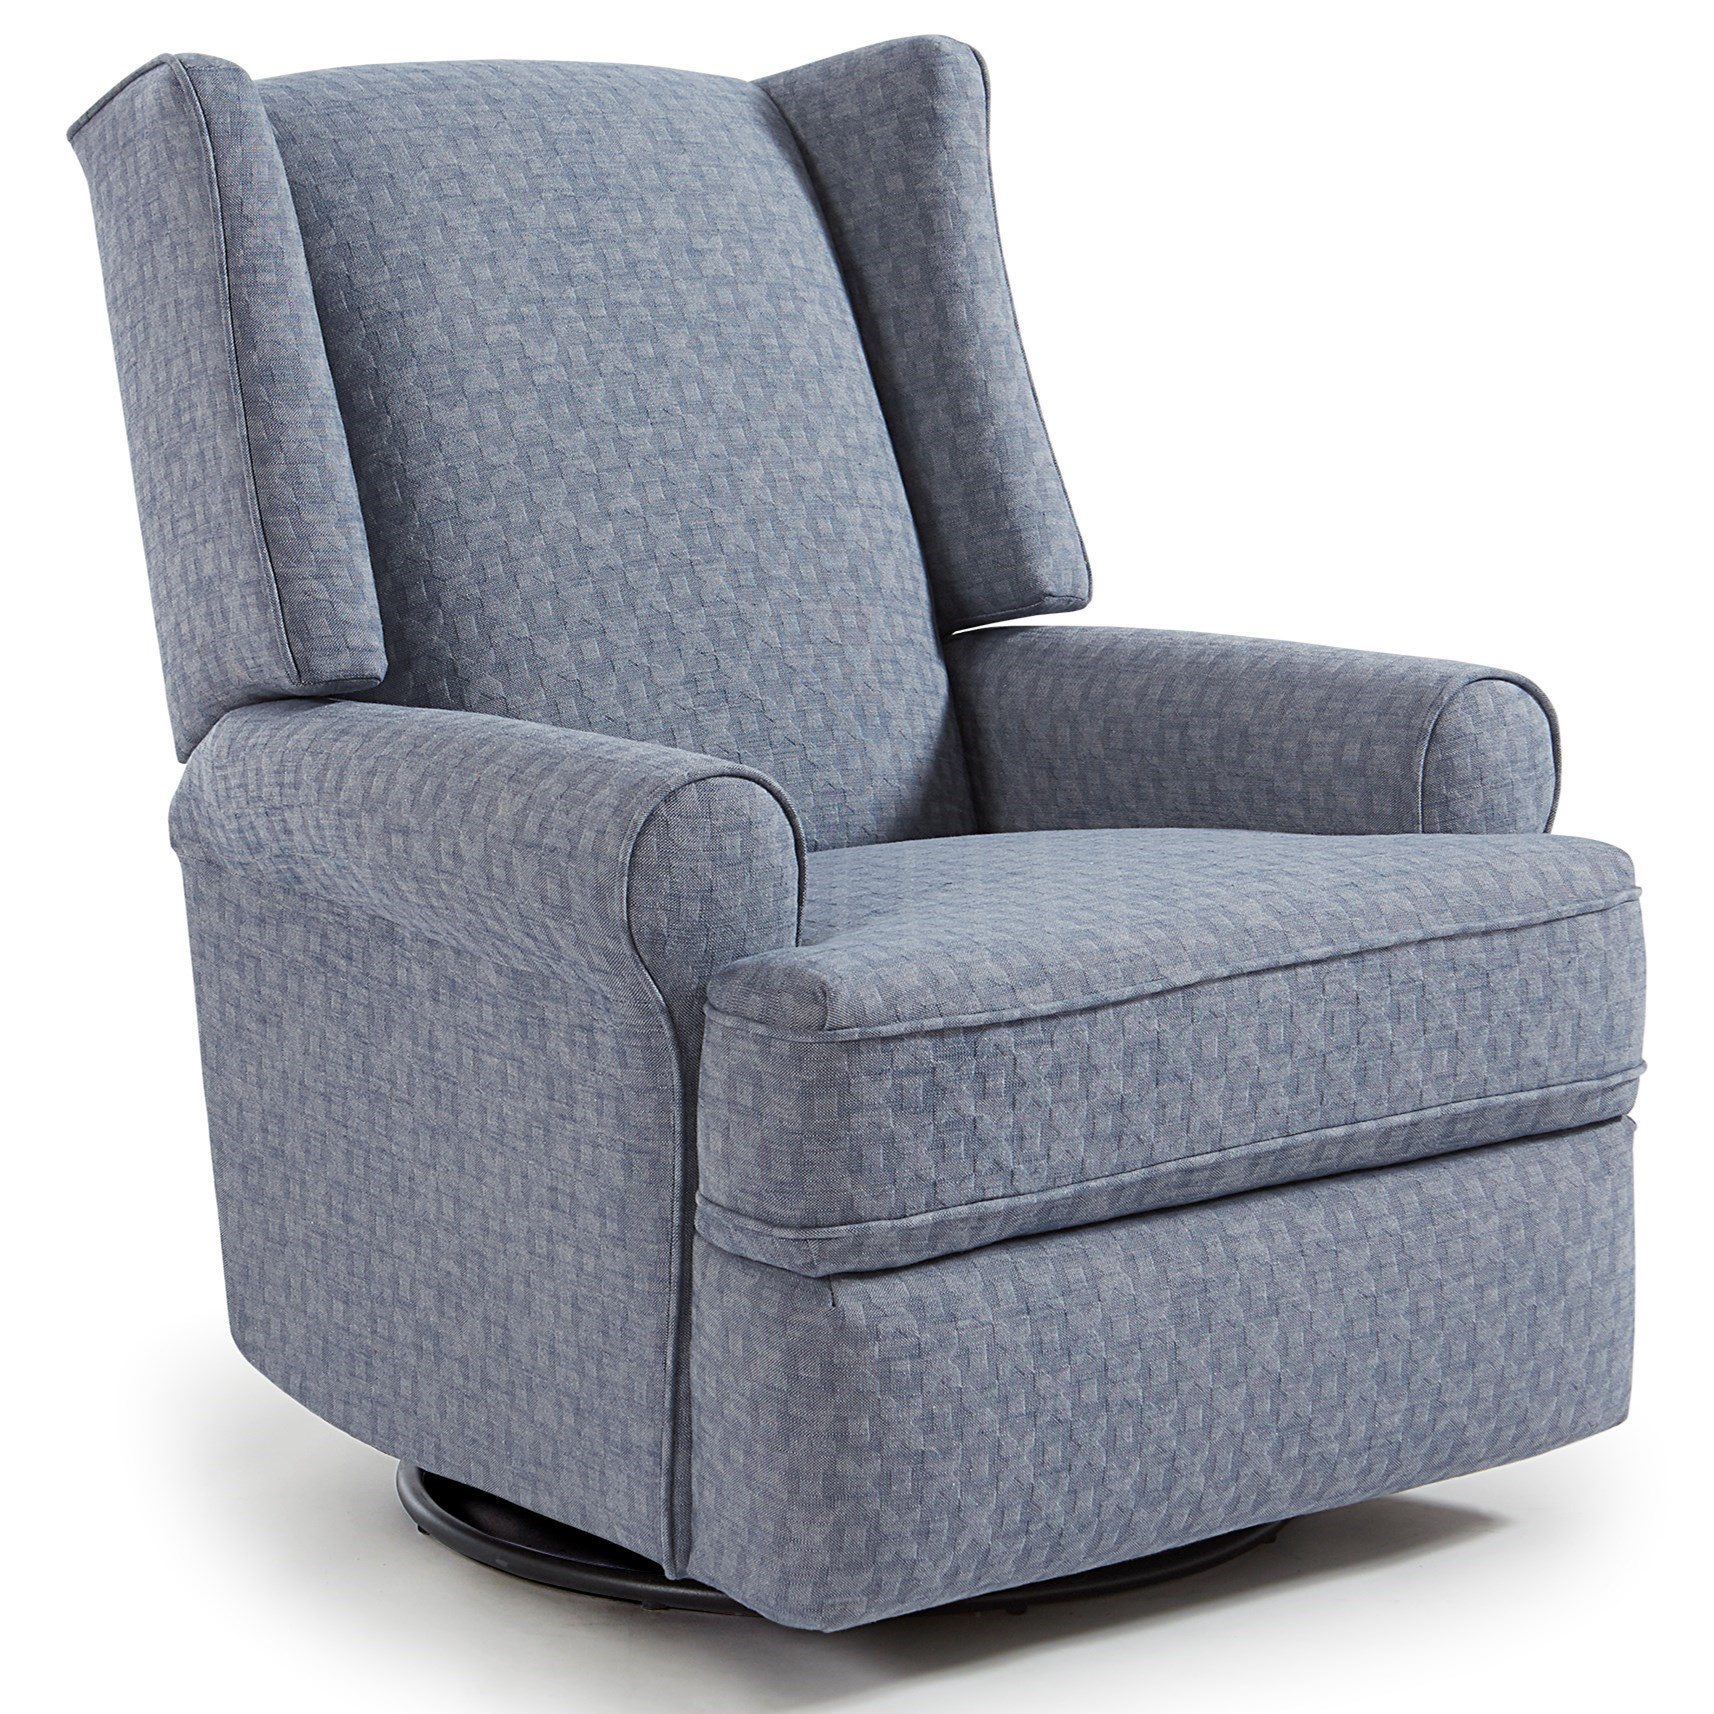 Best Home Furnishings Logan Wing Chair Style Power Swivel Glider Recliner Lindy S Furniture Company Recliners